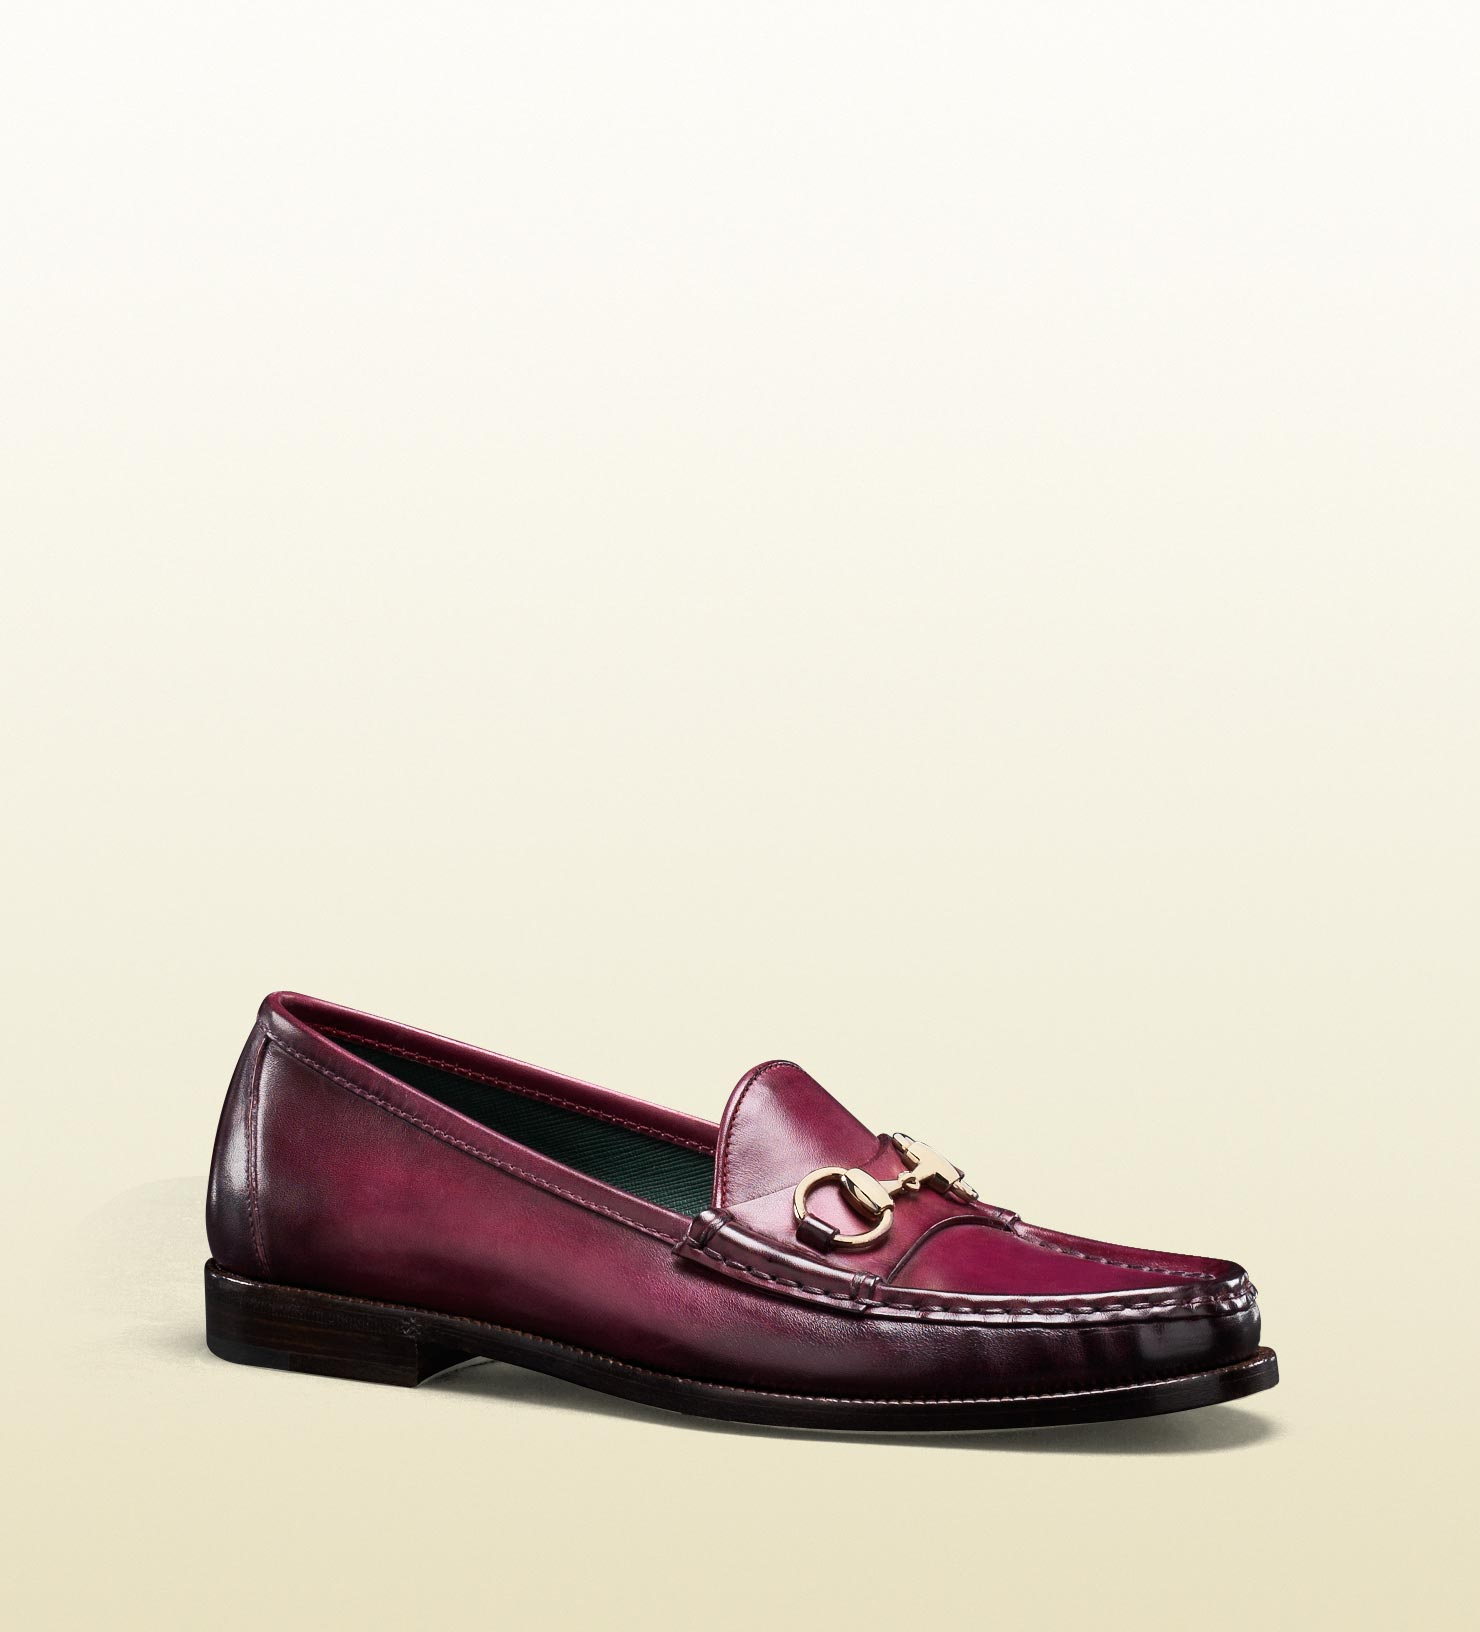 b5418af6a85 Lyst - Gucci Horsebit Moccasin in Cherry Color Hand Shaded Leather ...